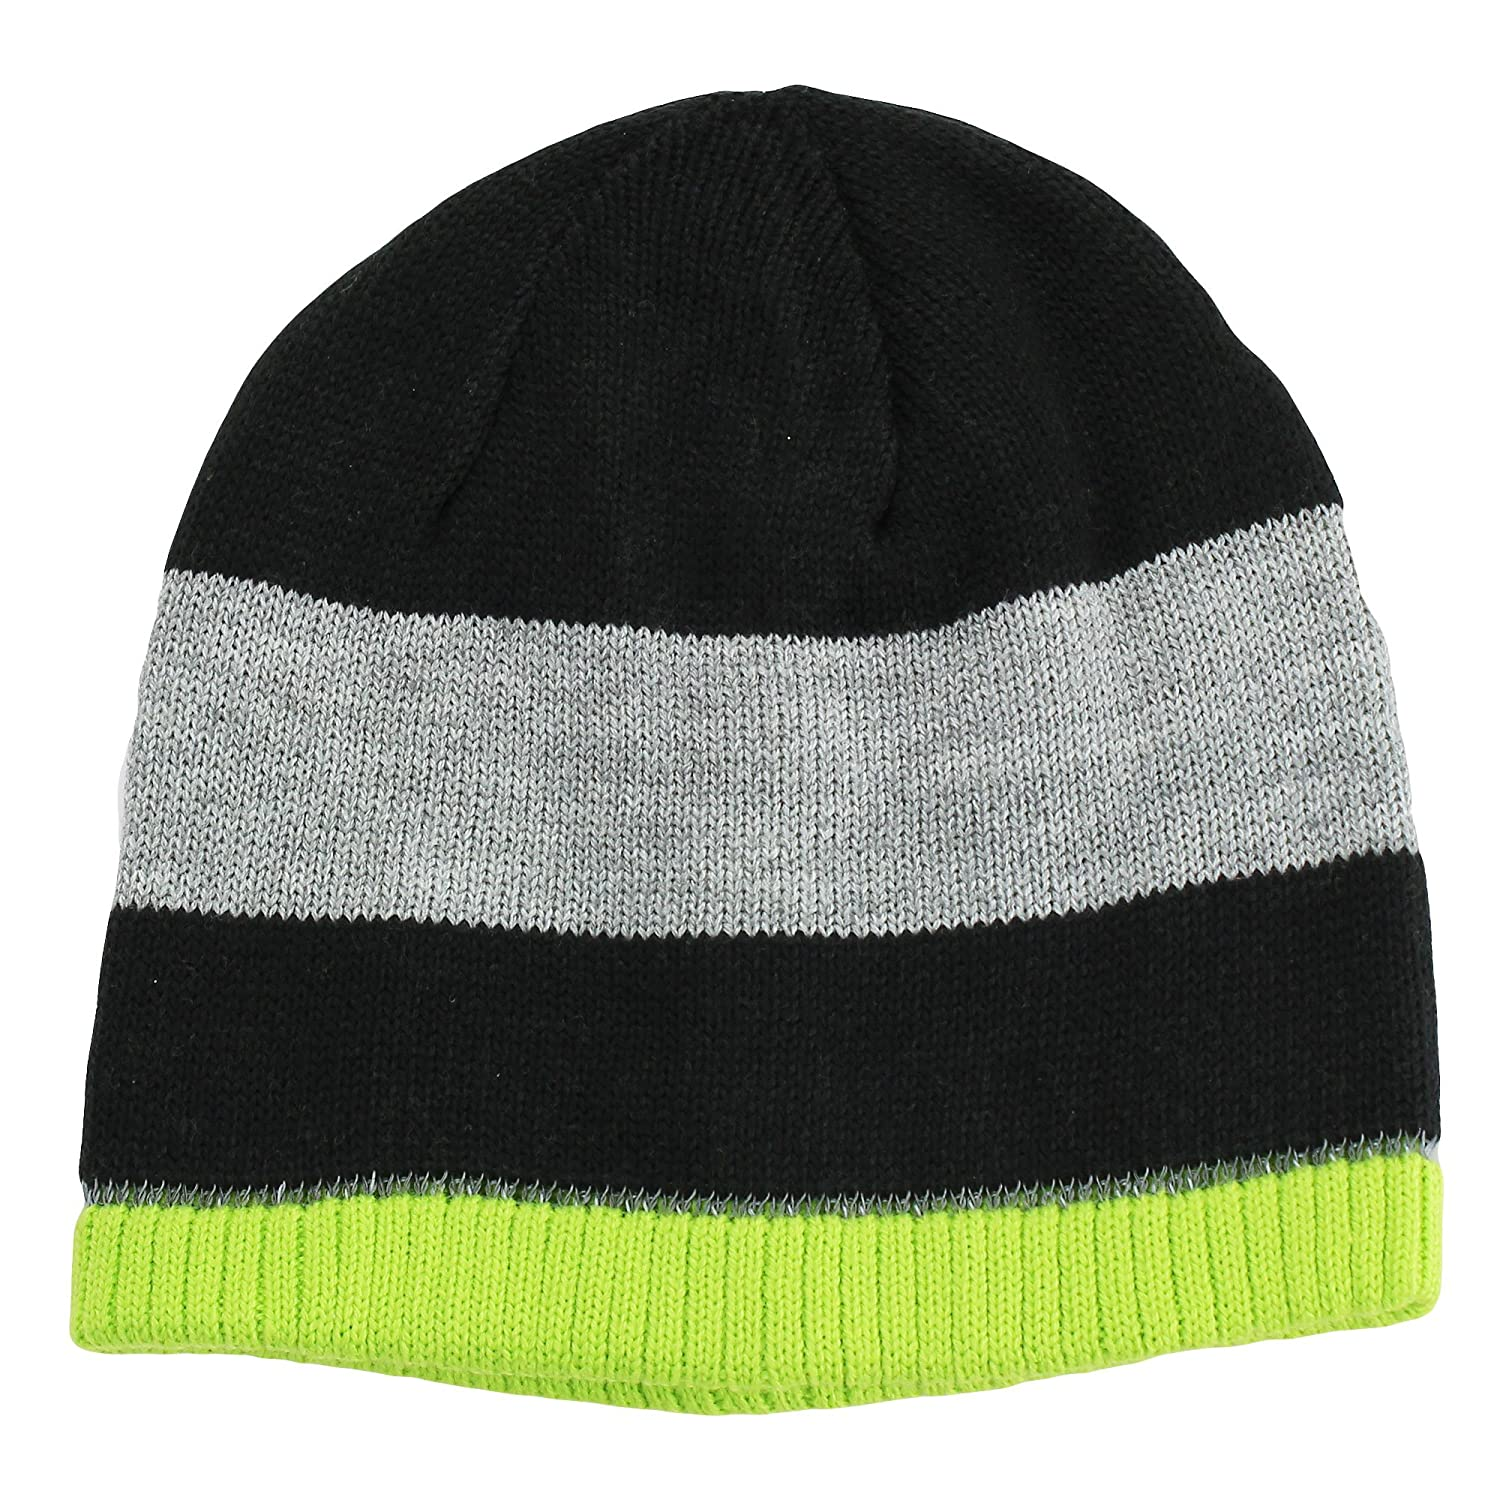 Nolan Boys Winter Hat Striped Reversible Beanie Cap Size 4-14 Black Blue Grey